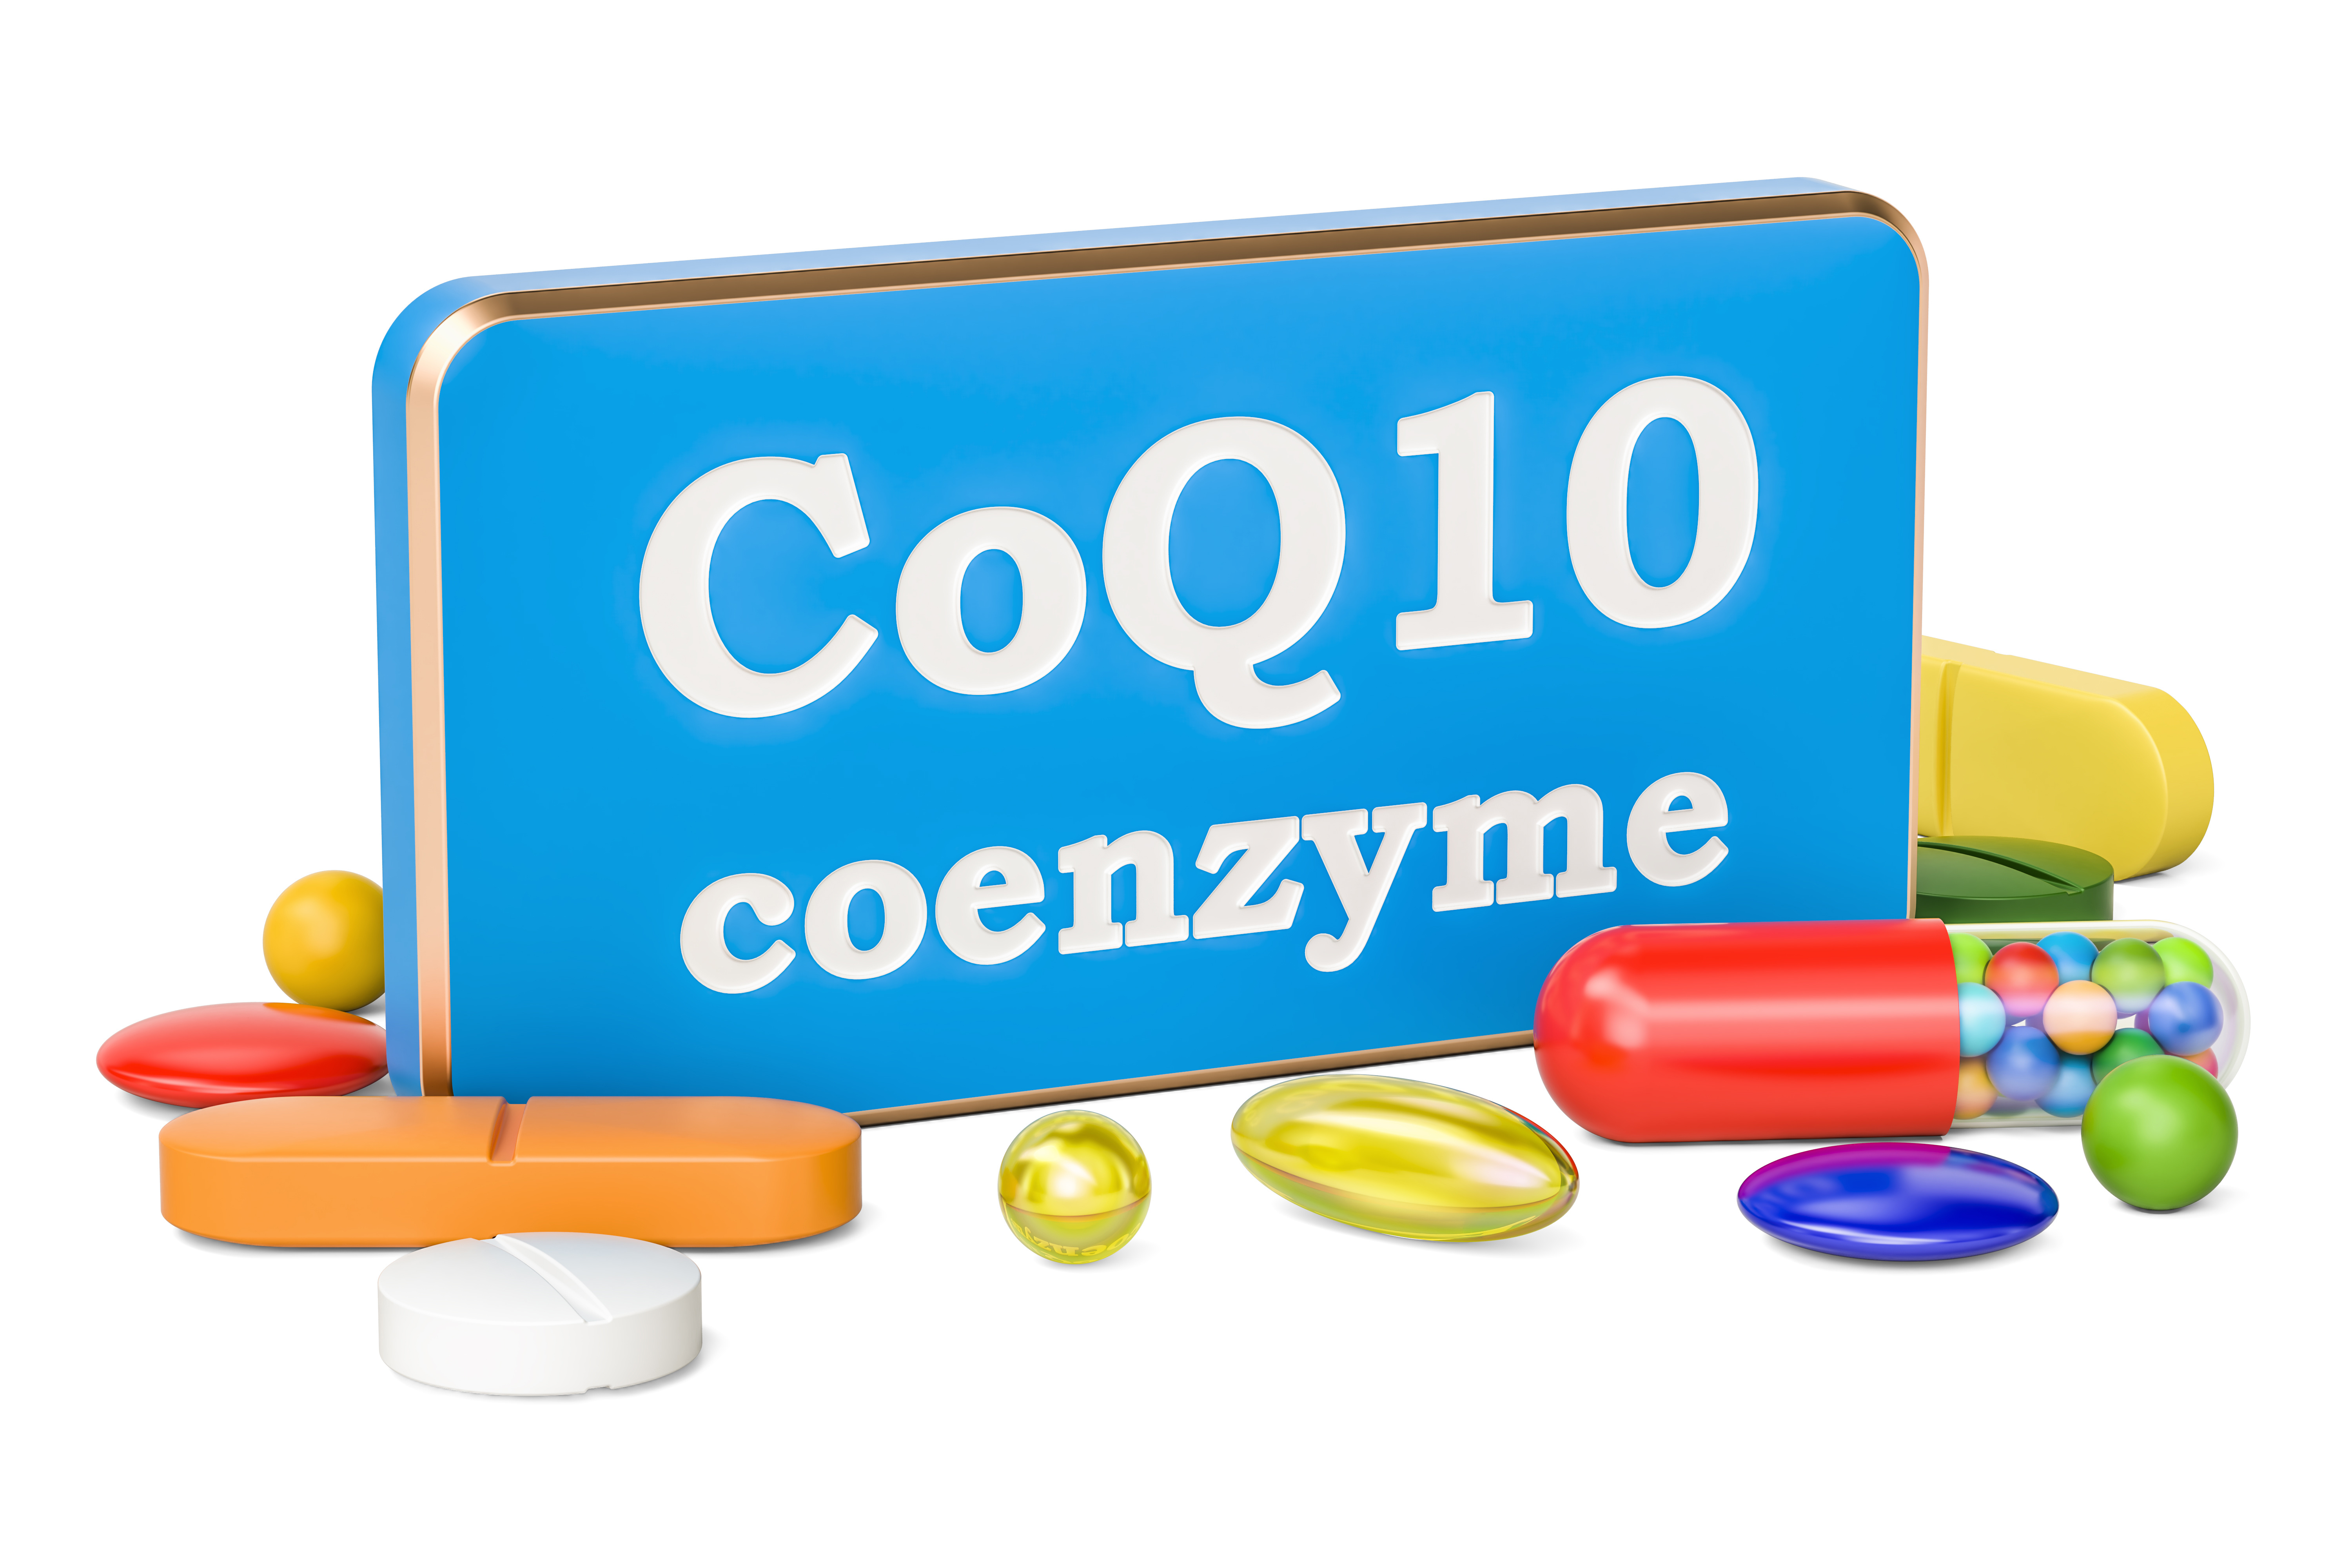 Coenzyme Q10, also known as ubiquinone or CoQ10, is a compound that has a critical role in energy production within the cells of the body.